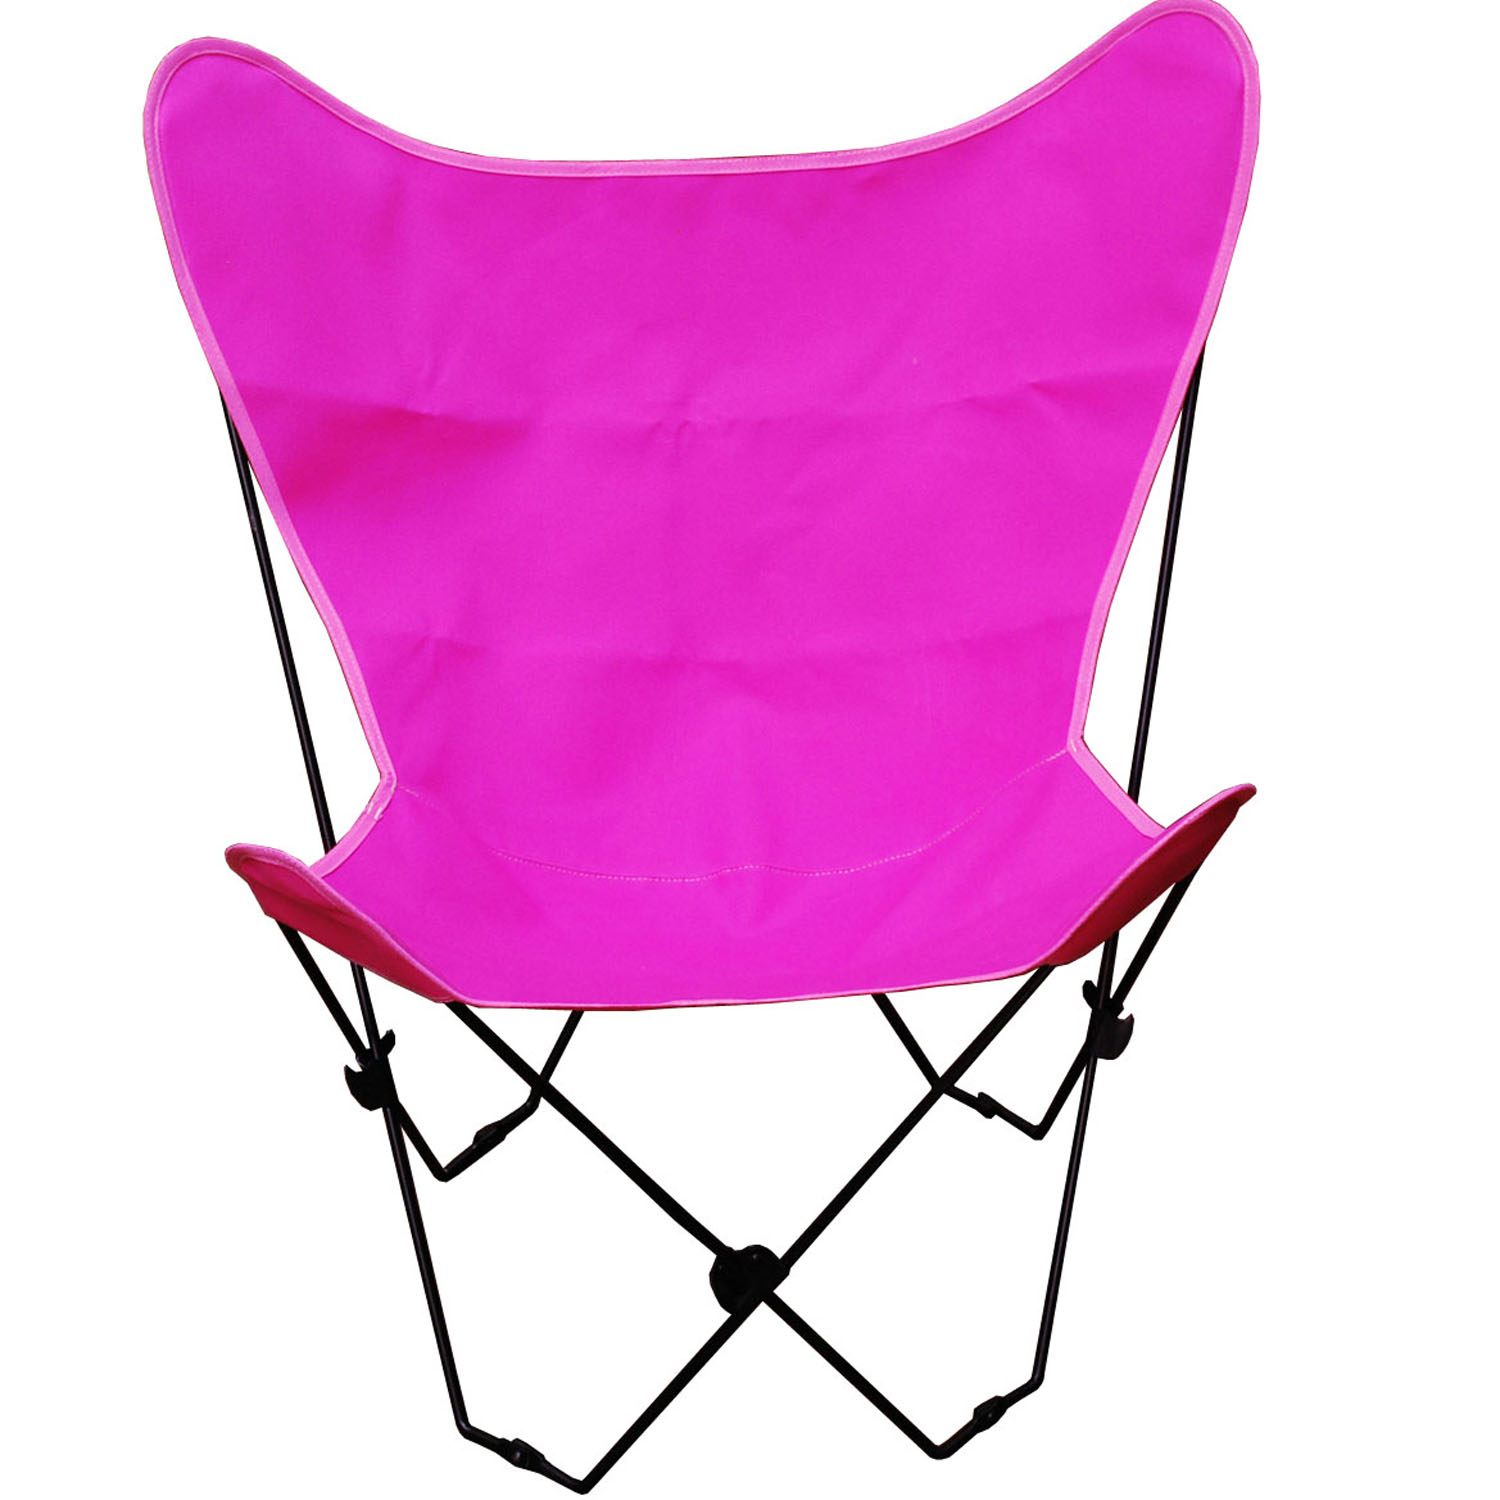 Butterfly Chair and Cover Combination With Black Frame, Pink